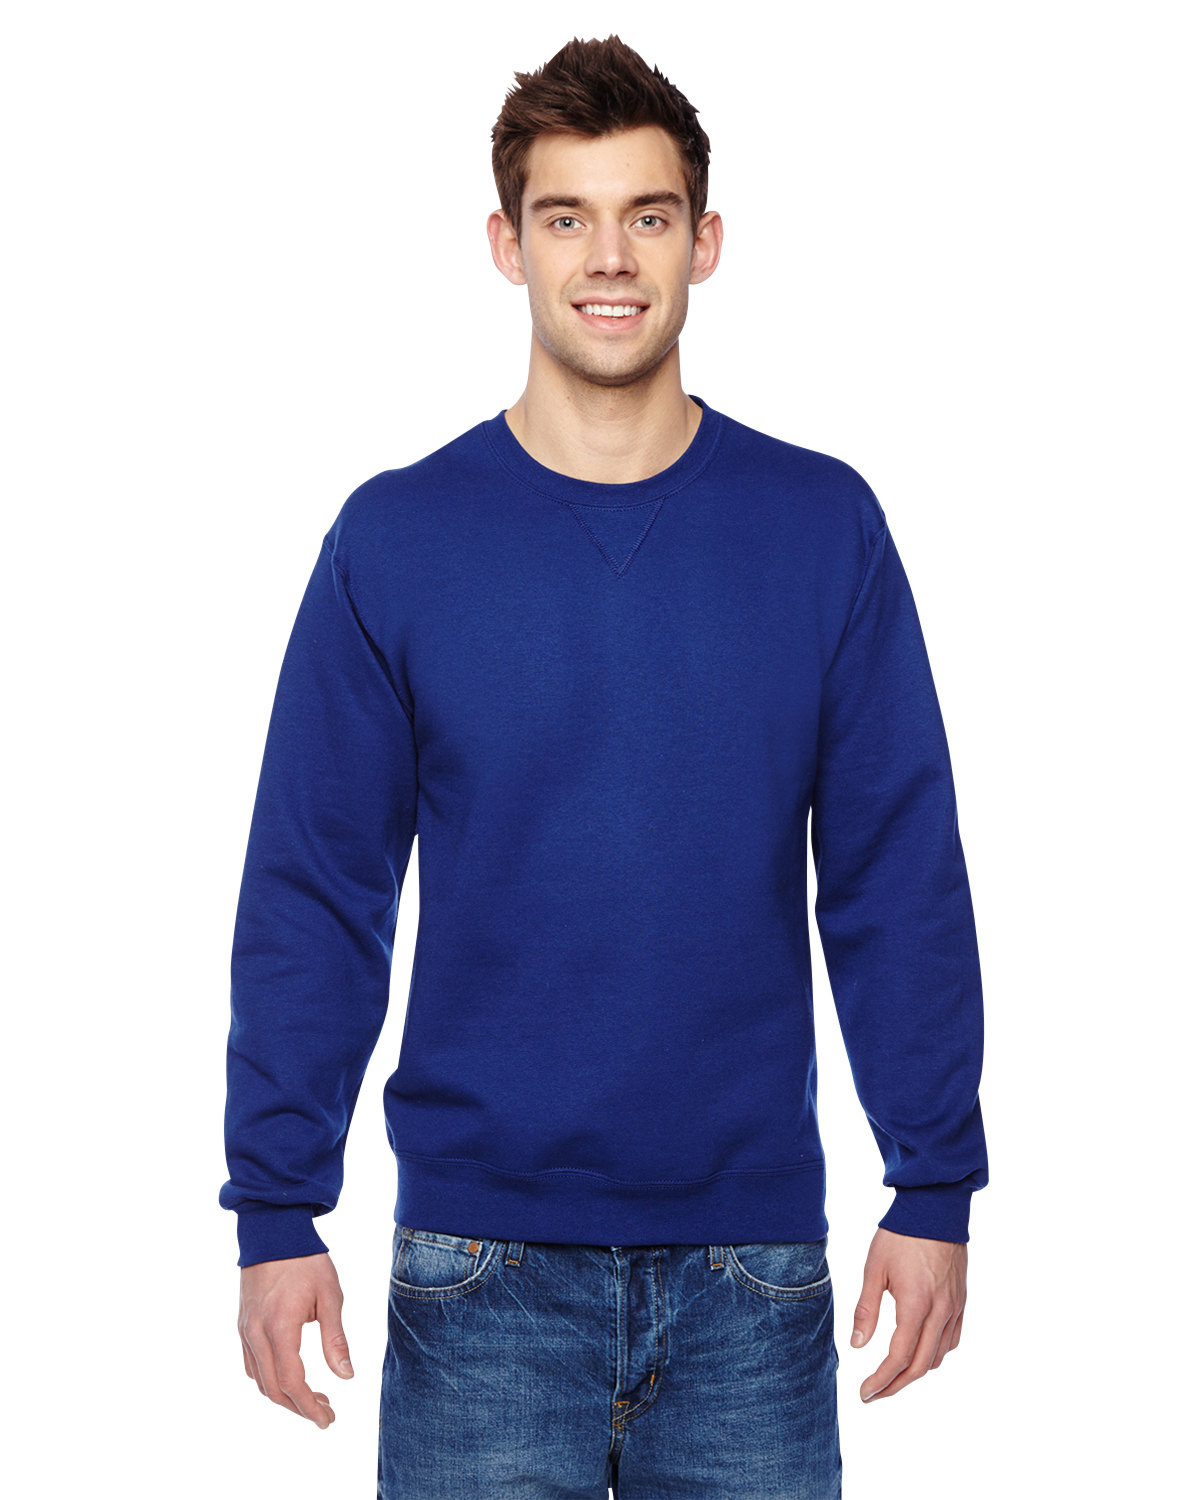 Adult 7.2 oz. SofSpun® Crewneck Sweatshirt